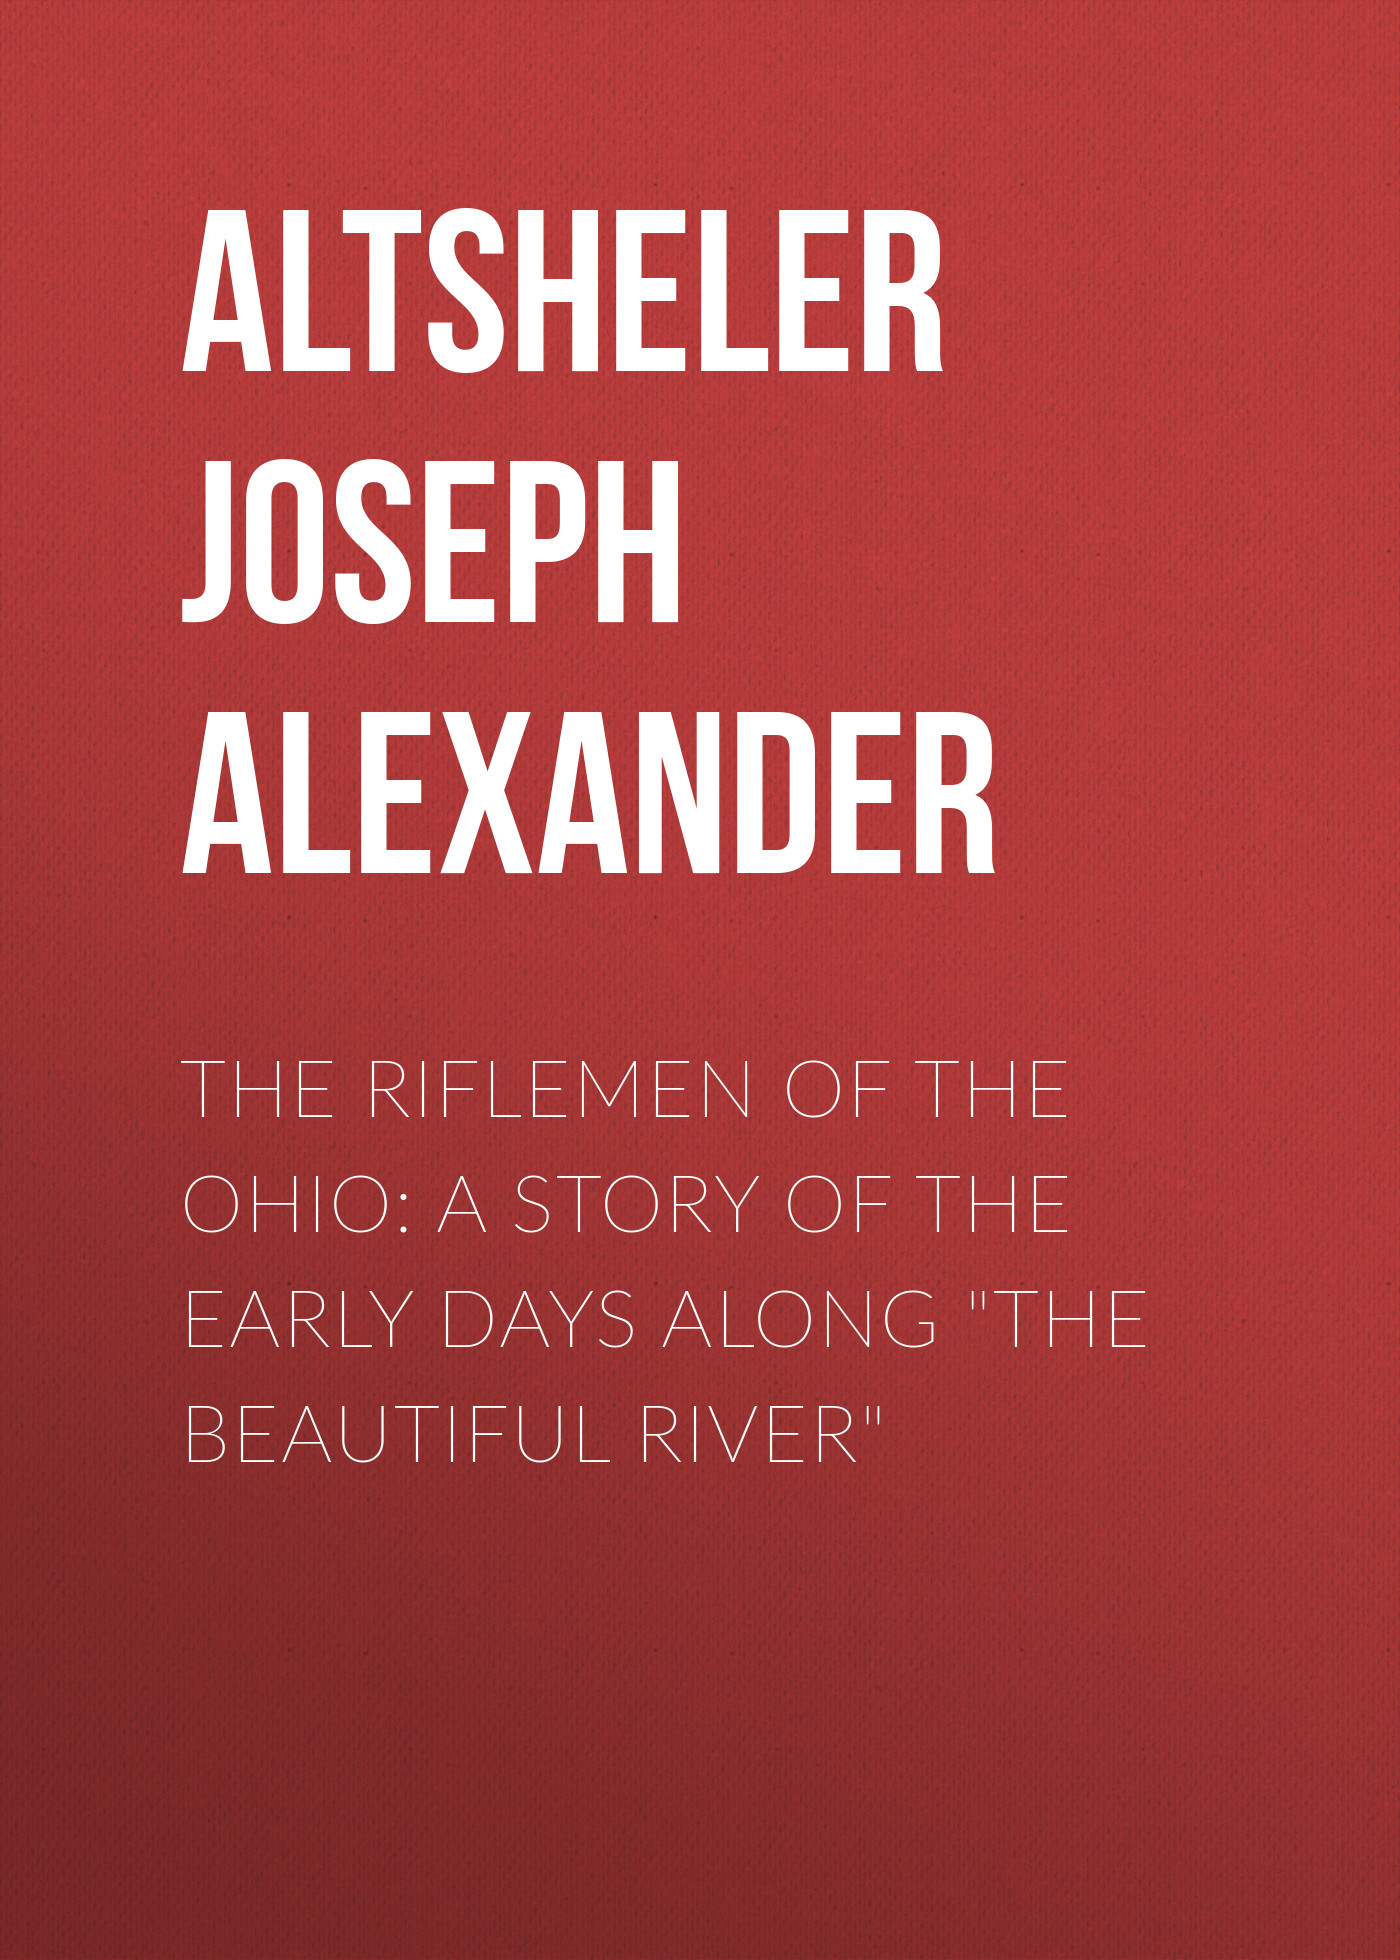 Altsheler Joseph Alexander The Riflemen of the Ohio: A Story of the Early Days along The Beautiful River altsheler joseph alexander the free rangers a story of the early days along the mississippi